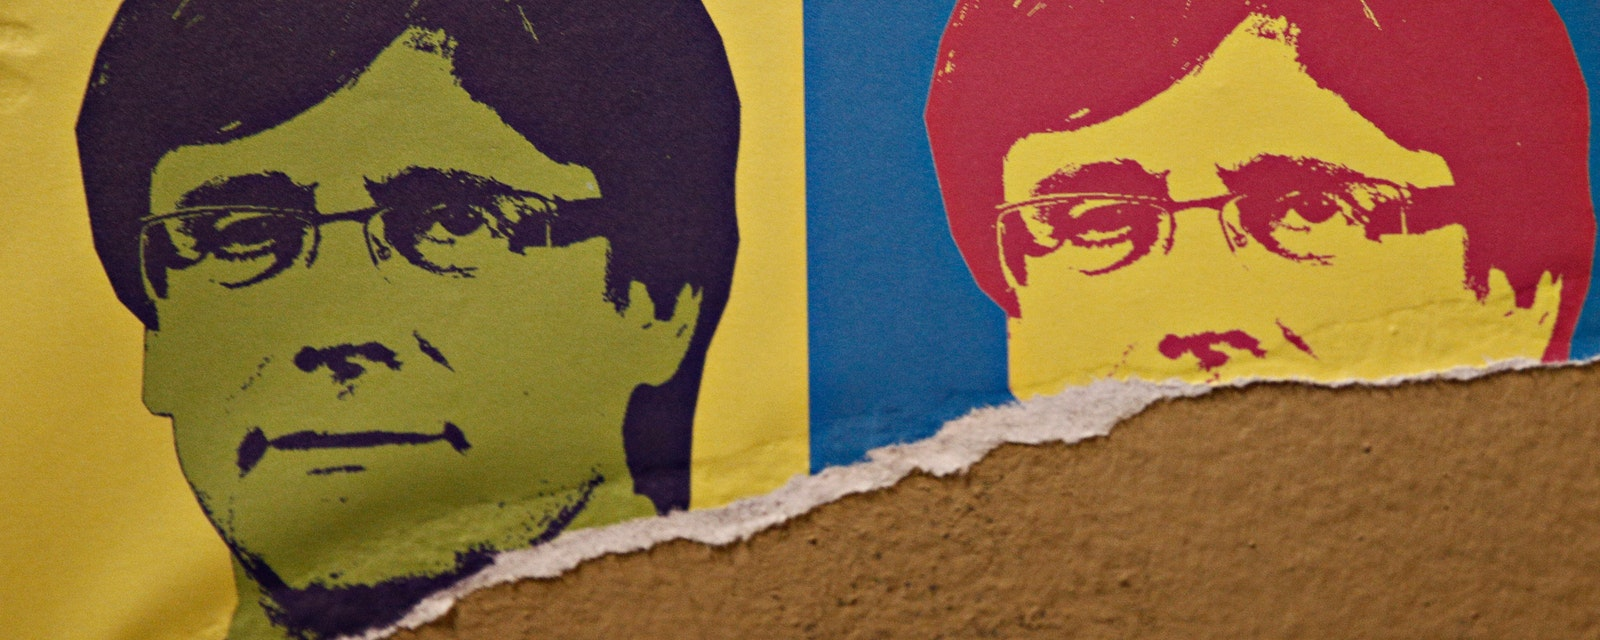 Poster of Catalonia's former president Carles Puigdemont in Barcelona